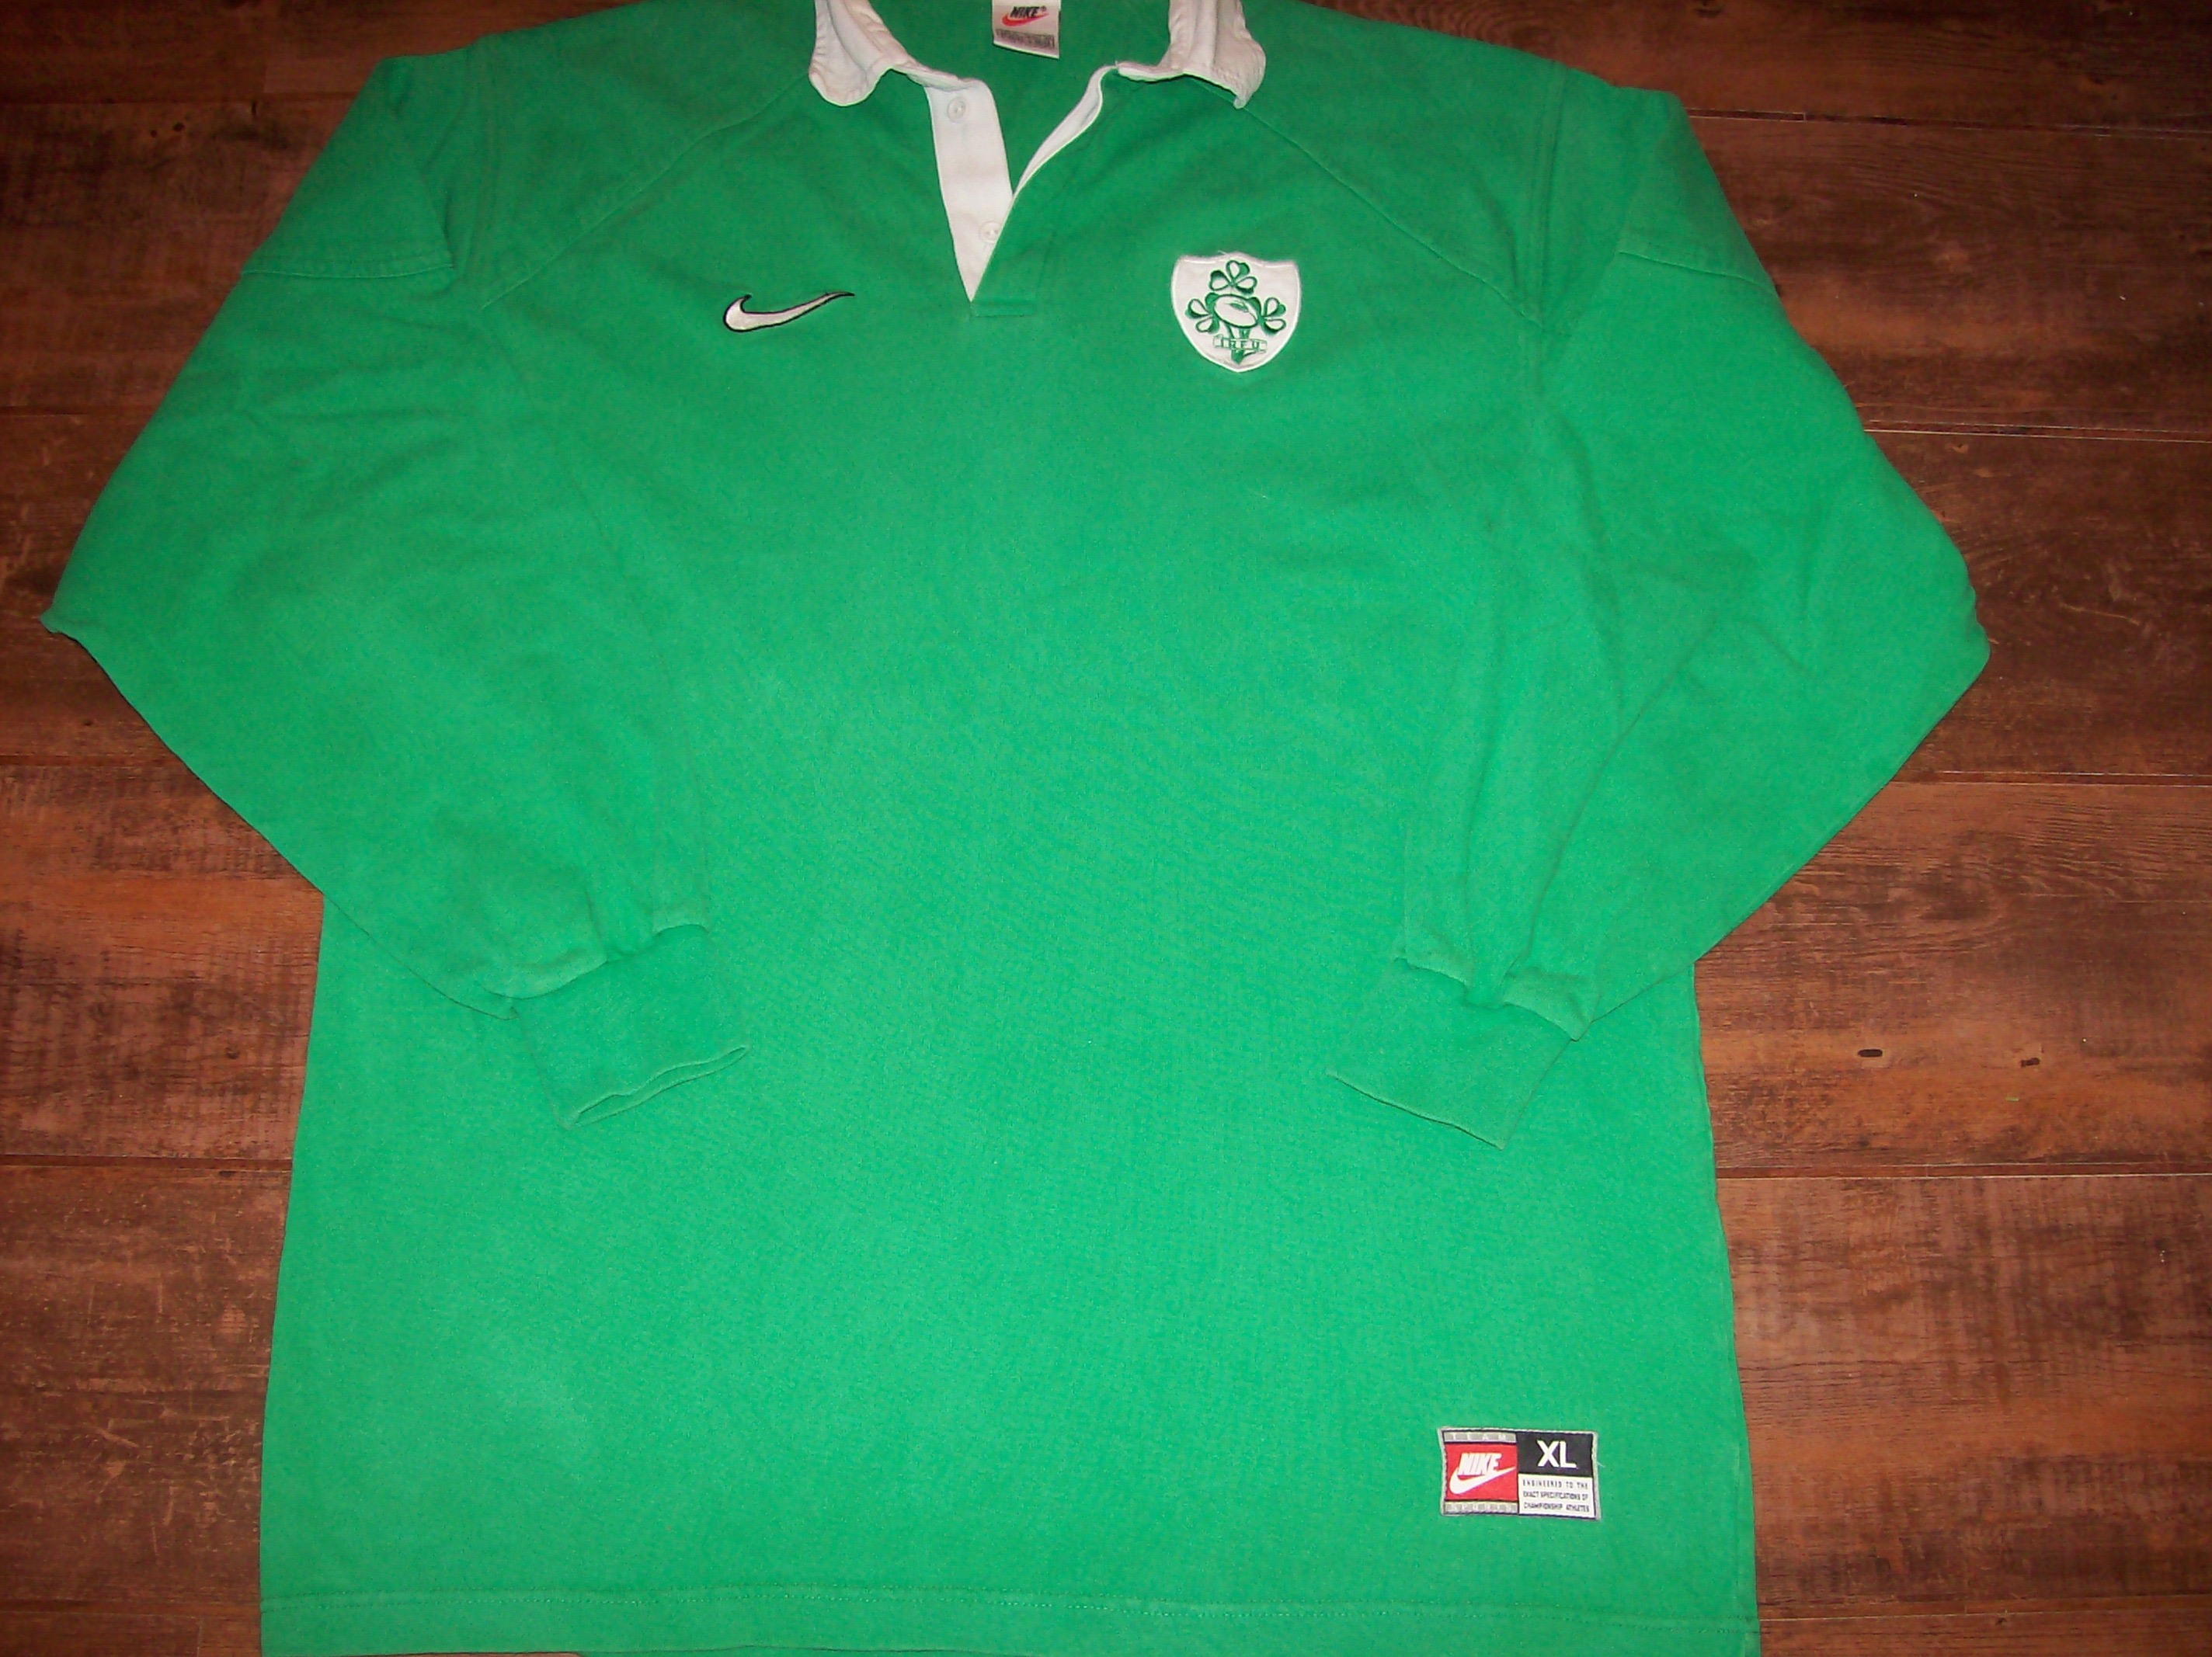 Old Ireland Rugby Shirts Vintage Ireland Rugby Jerseys